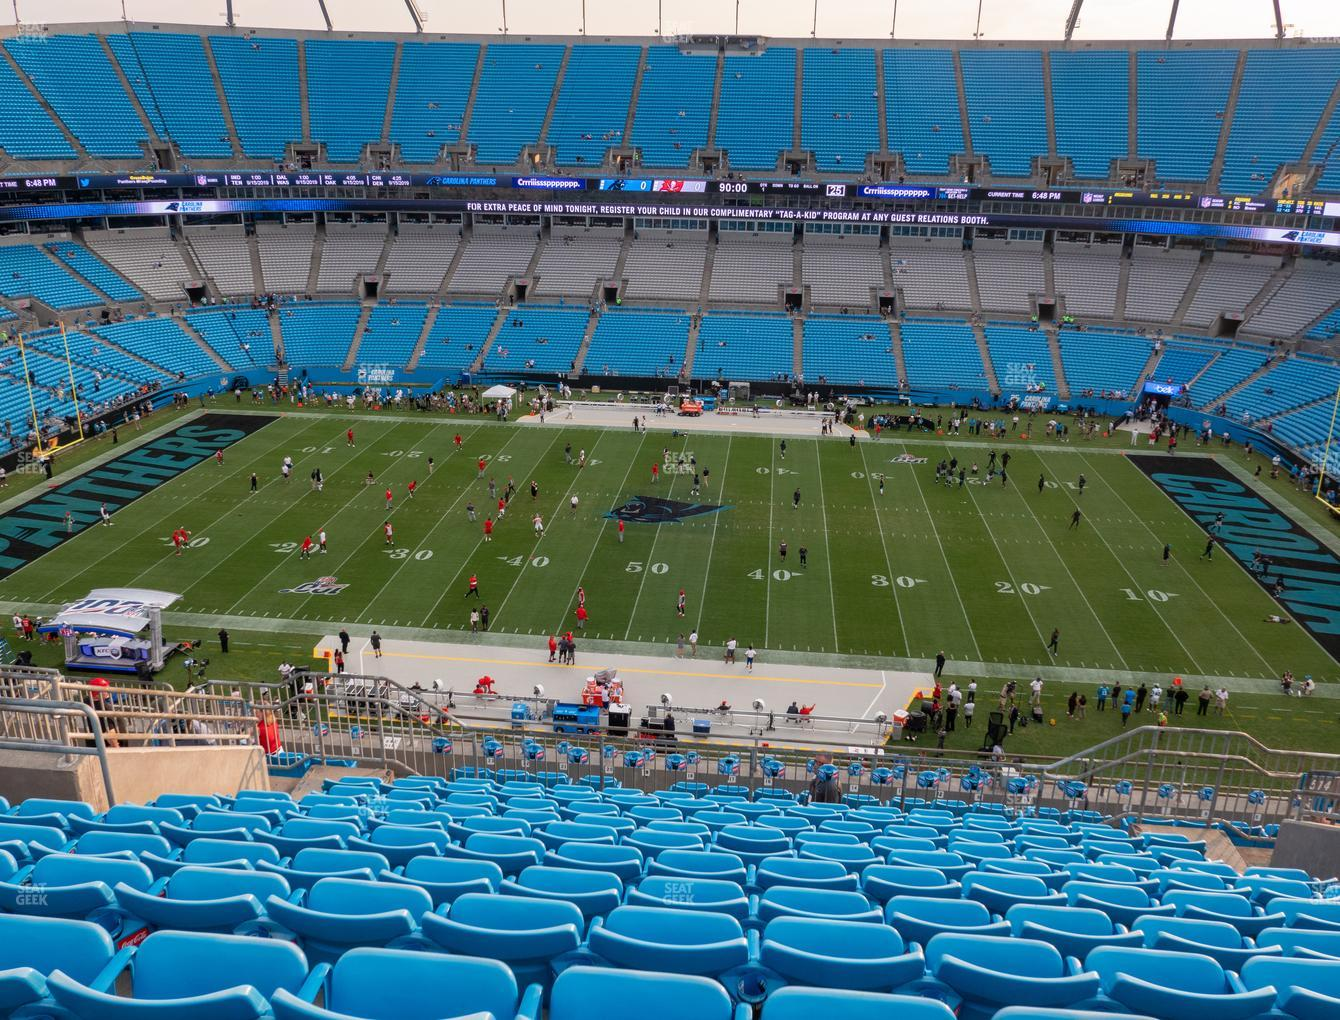 Carolina Panthers at Bank of America Stadium Section 514 View